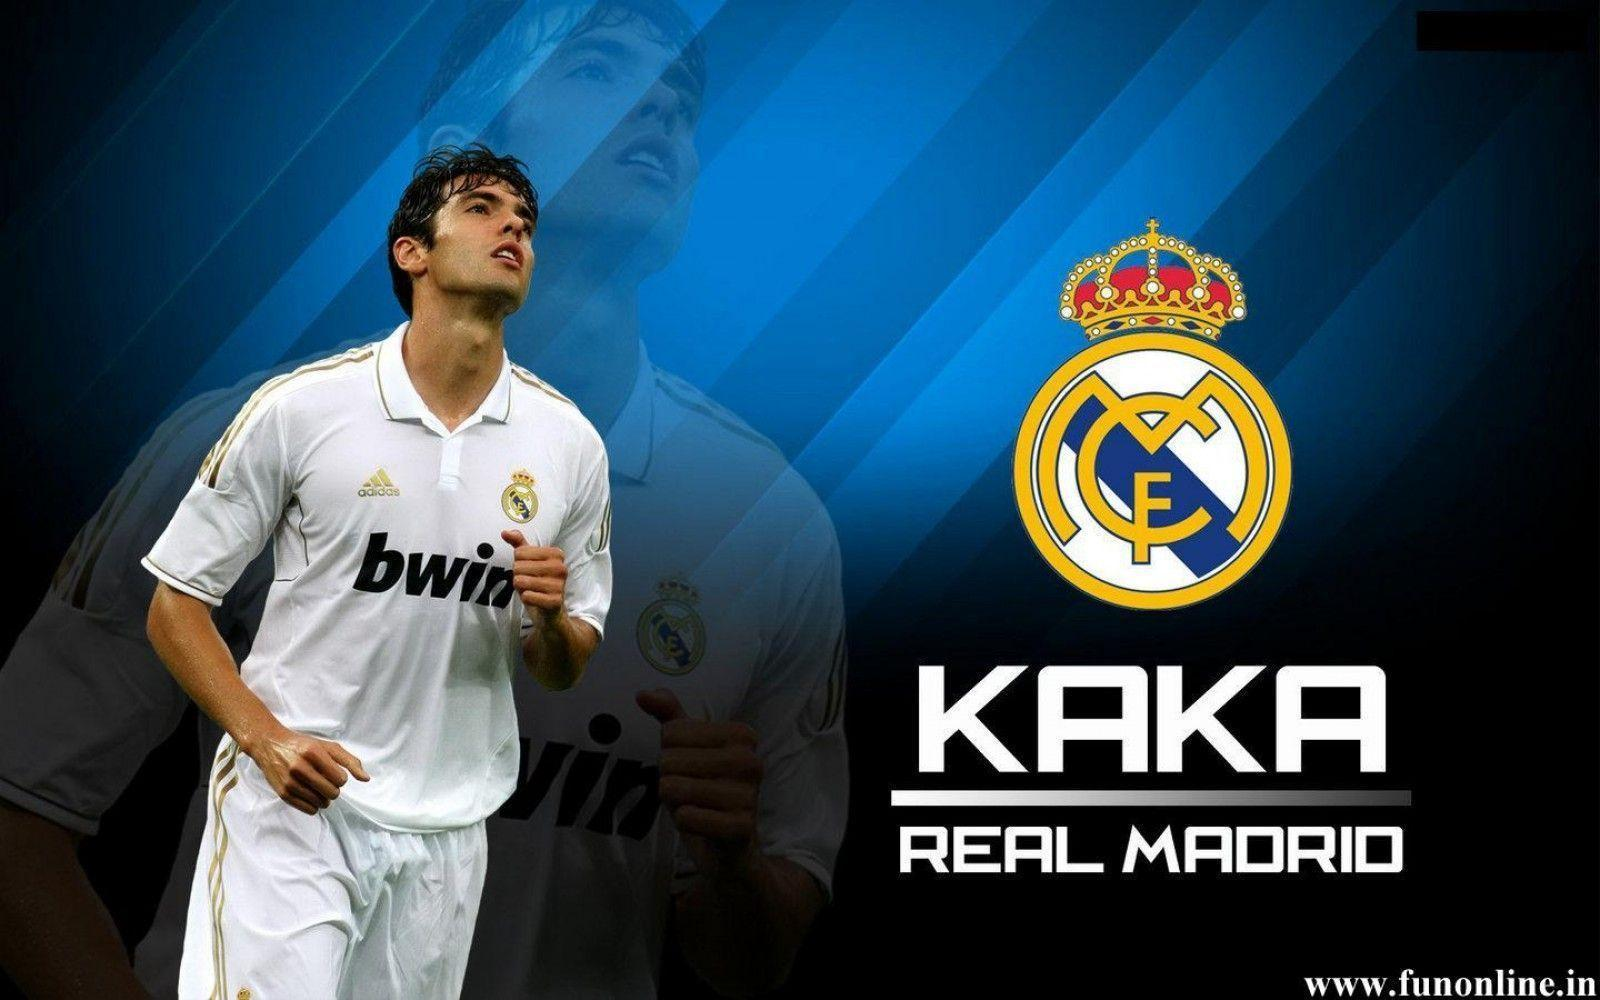 Ricardo Kaka Wallpapers Hd Kaka Wallpapers Real Madrid Wallpaper Cave